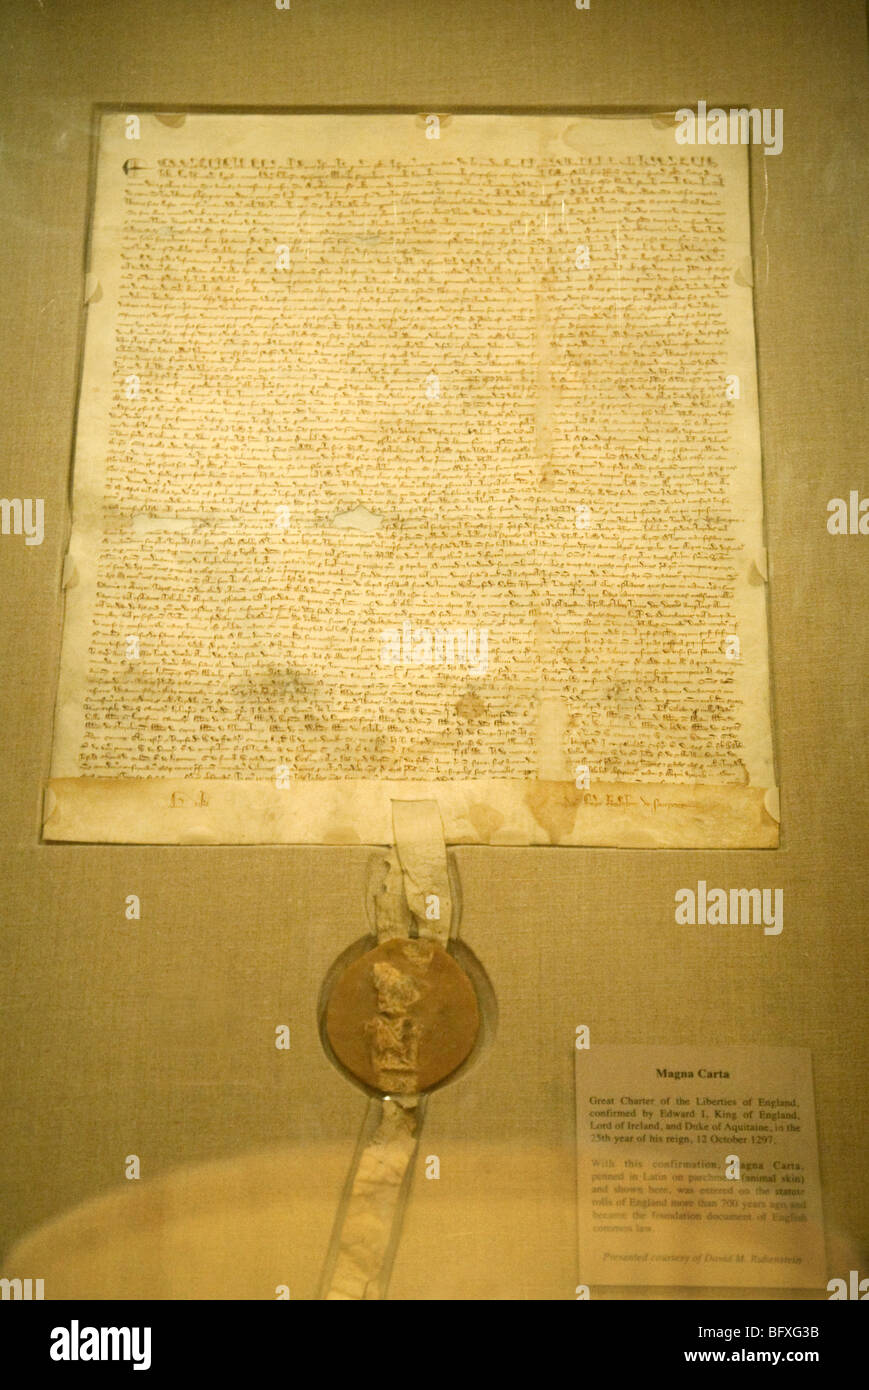 Original copy of the Magna Carta document on loan to the National Archives, Washington DC USA. See CNPX83 for improved - Stock Image